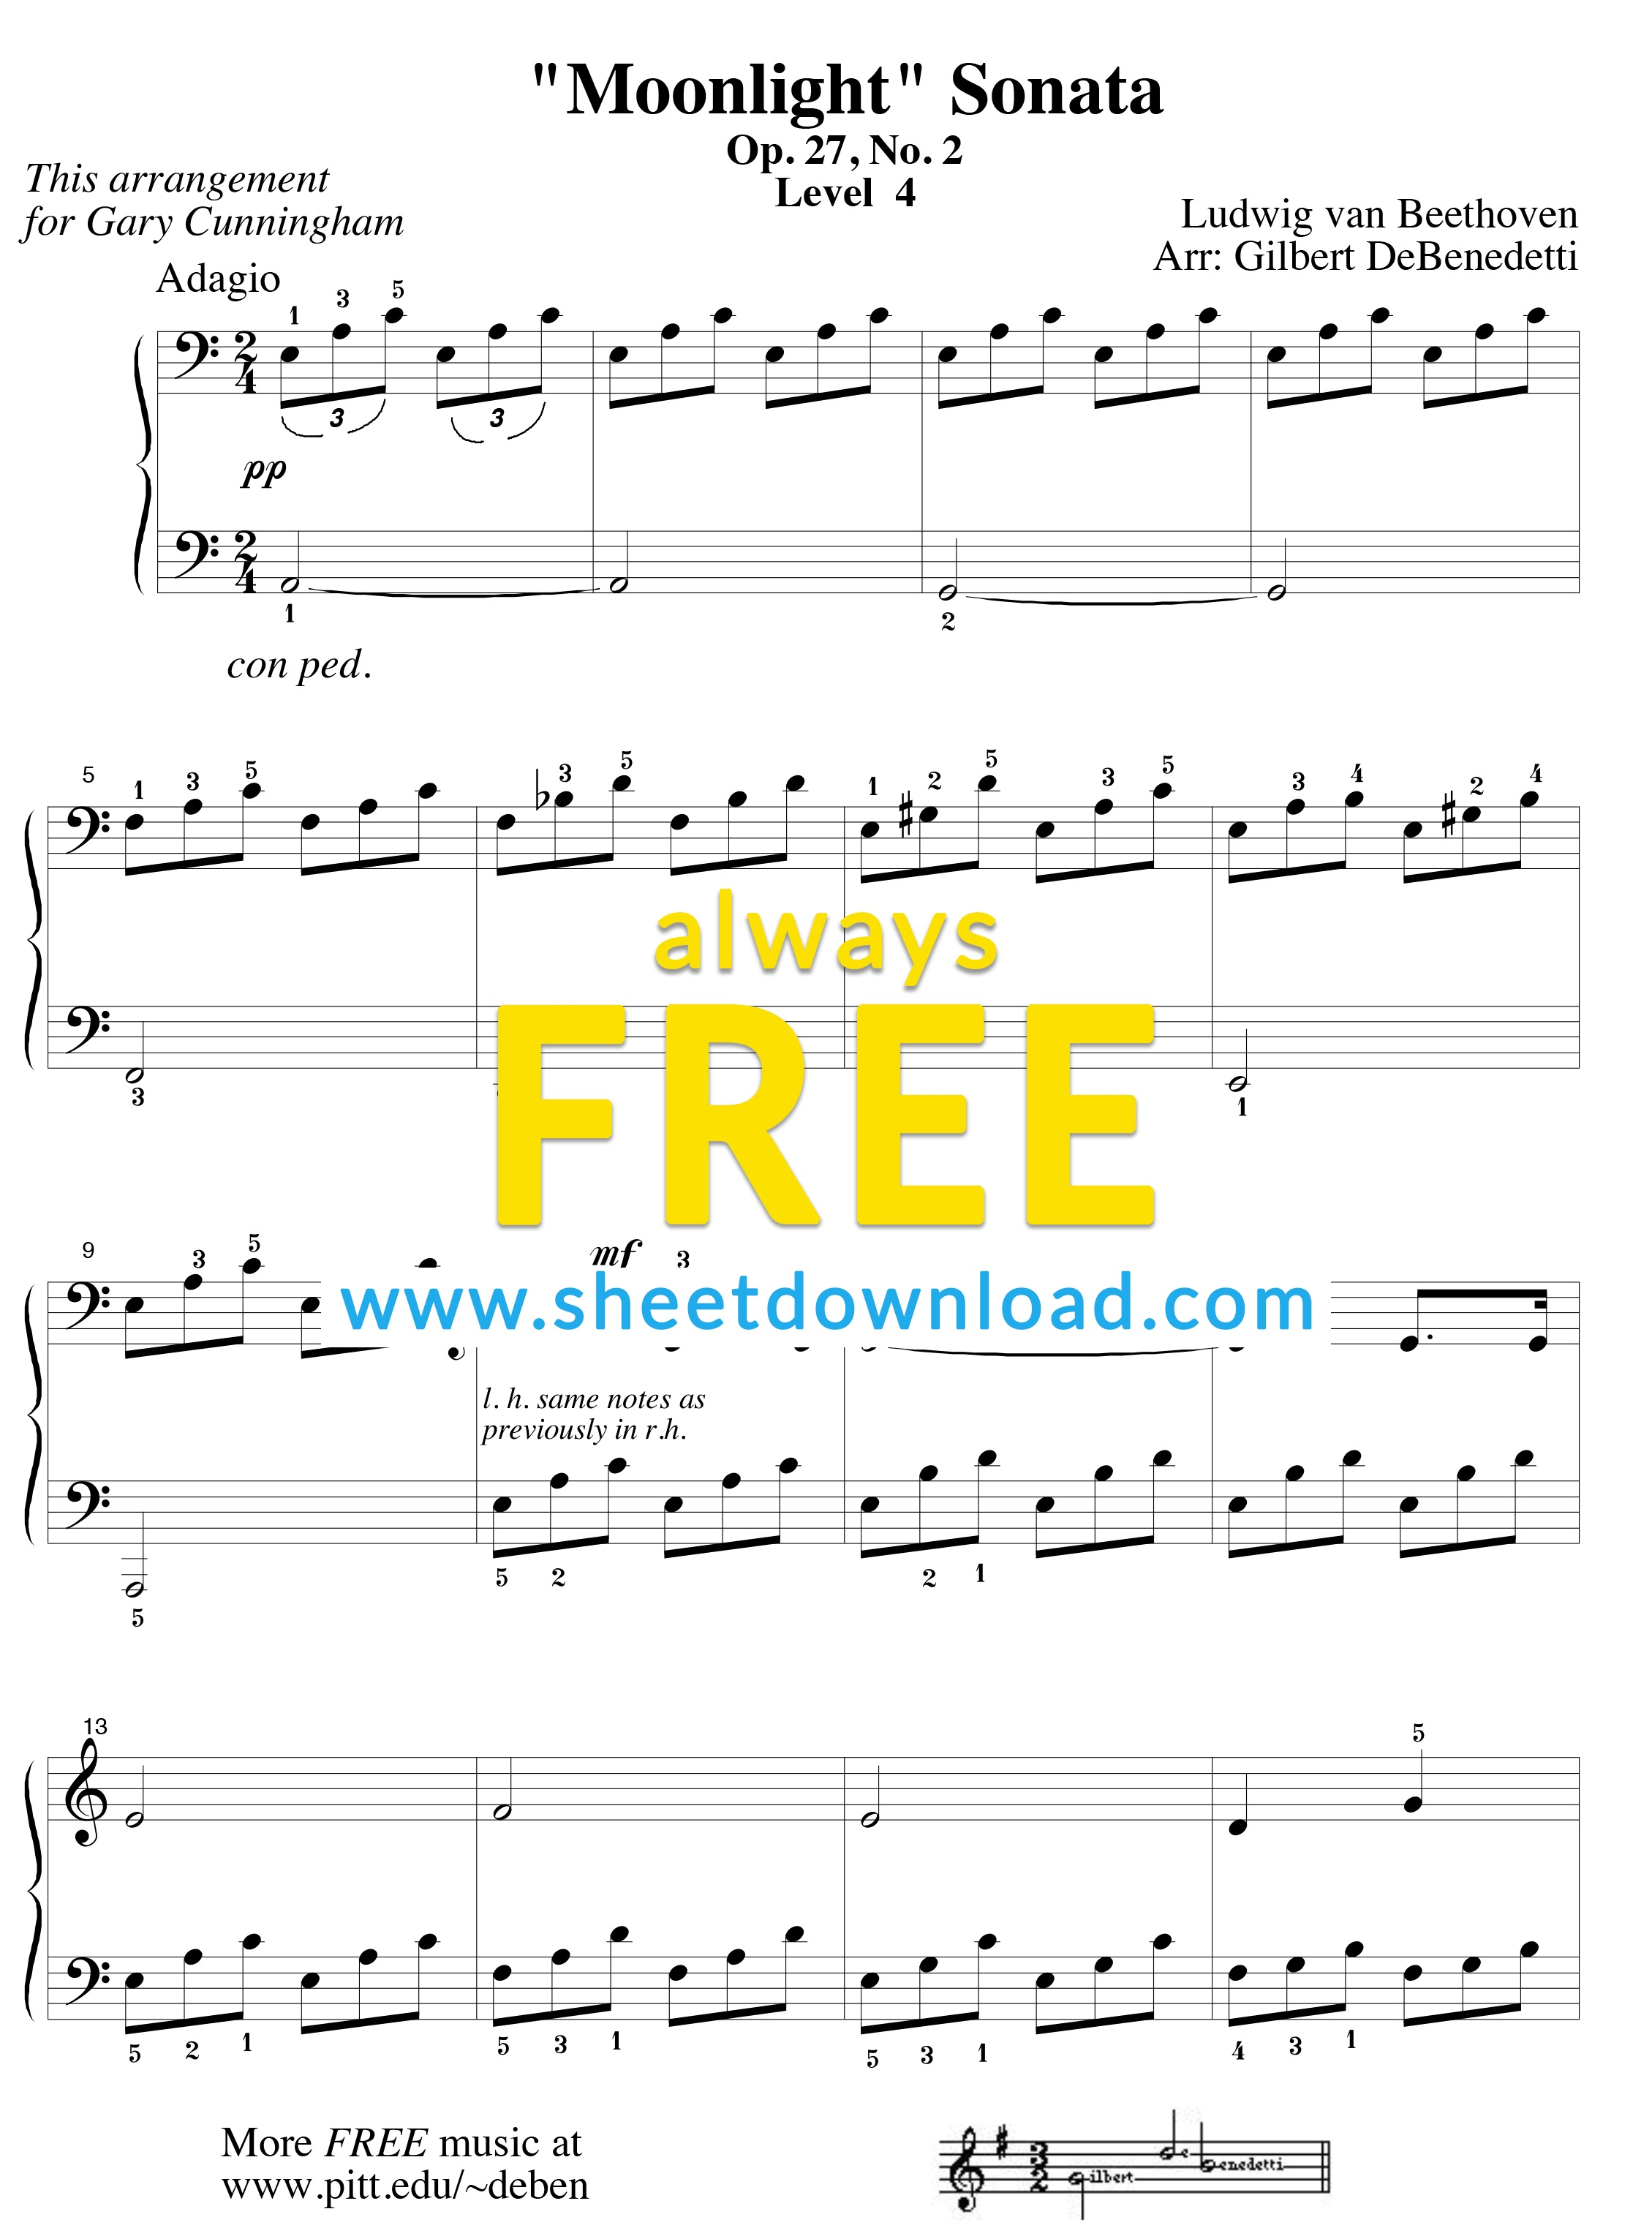 Free Piano Sheet Music To Download And Print - High Quality Pdfs - Frozen Piano Sheet Music Free Printable